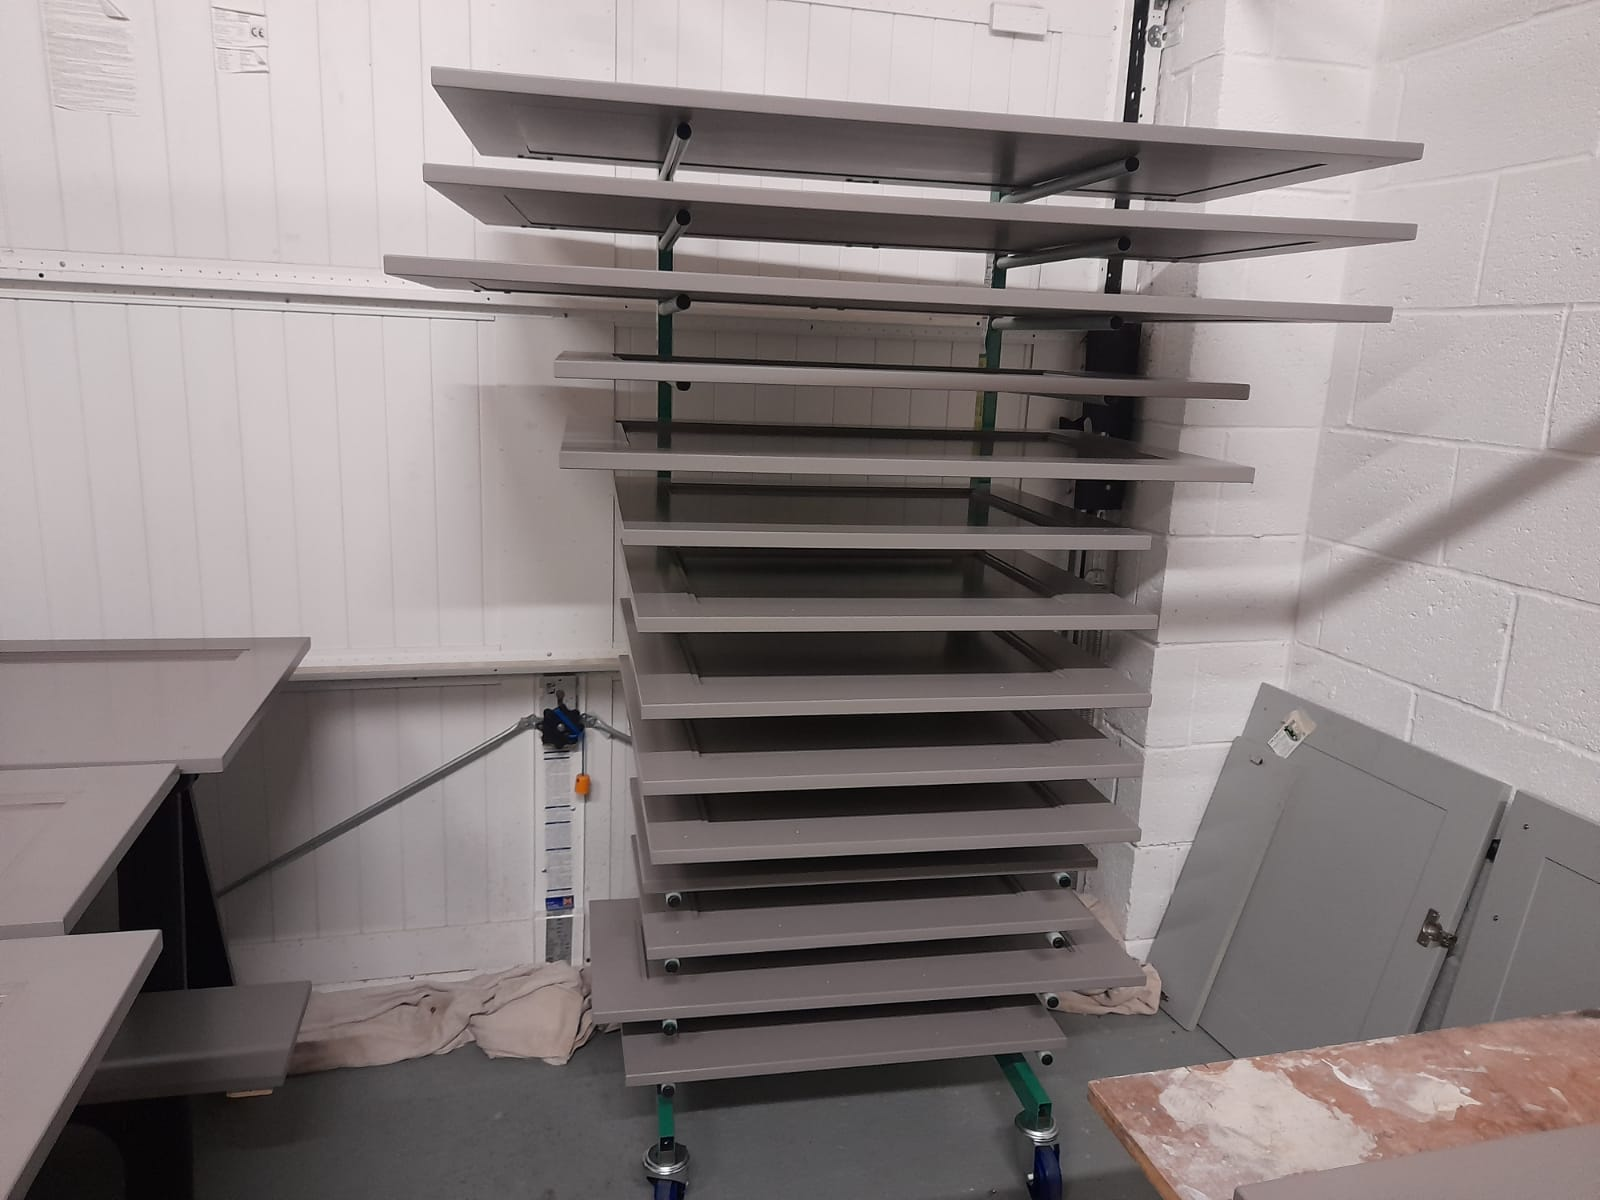 Cabinet doors after preparation for hand-painting a kitchen in Leeds by Gareth Thompson Decorators